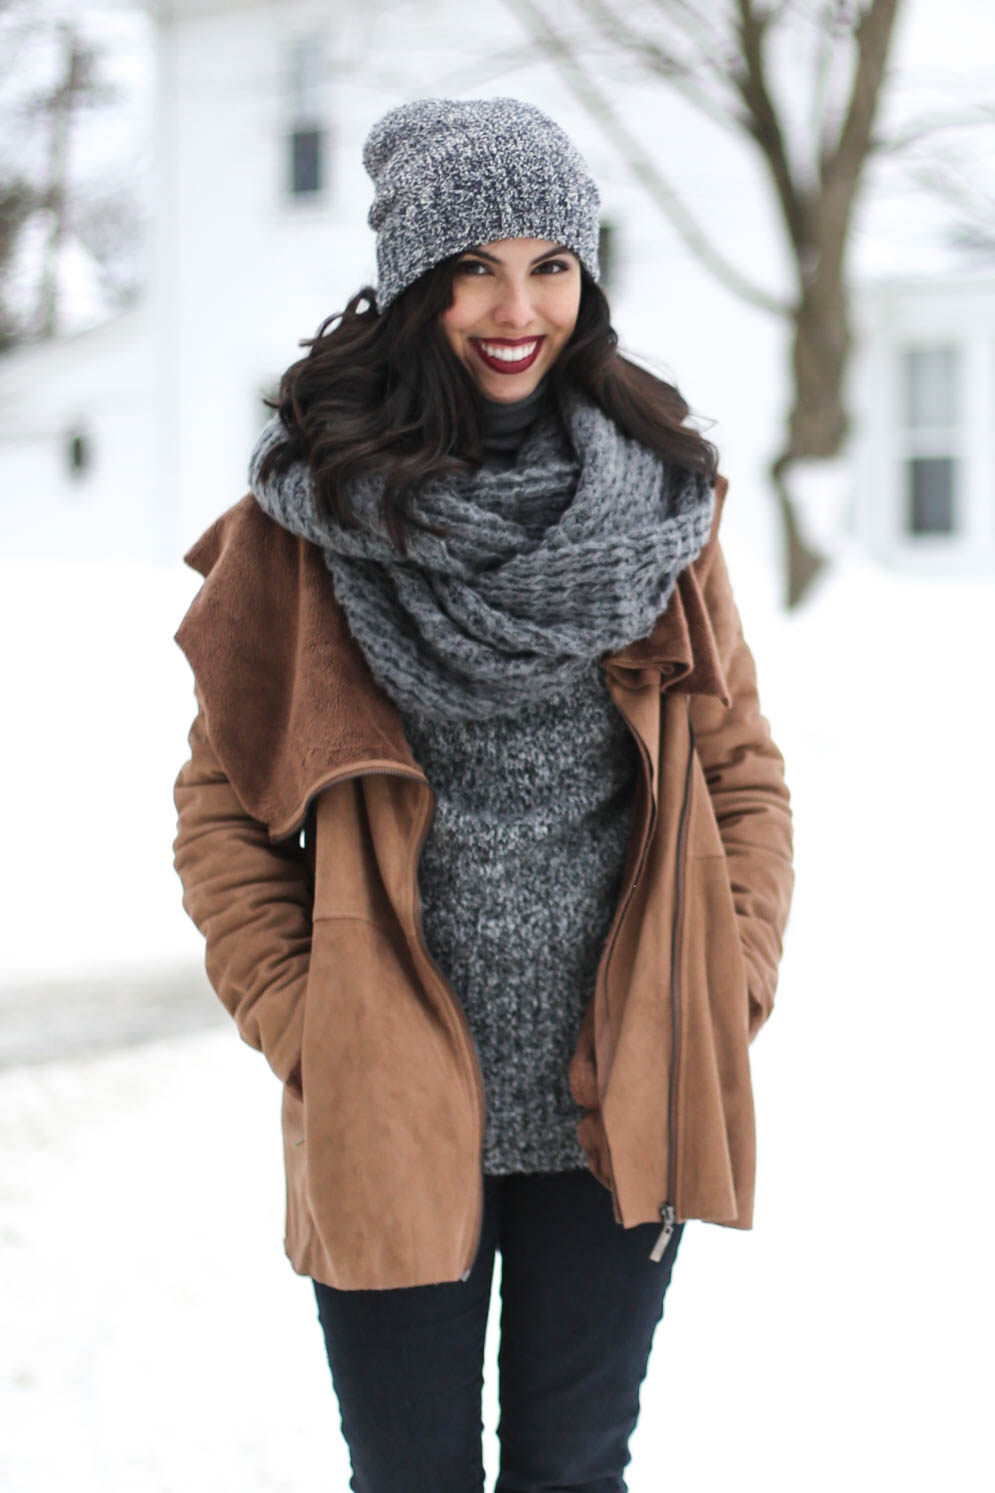 austin style blogger, casual winter look ideas, forever 21 beanie, asos scarf, forever 21 denim jeans, austin texas style blogger, austin fashion blogger, austin texas fashion blog